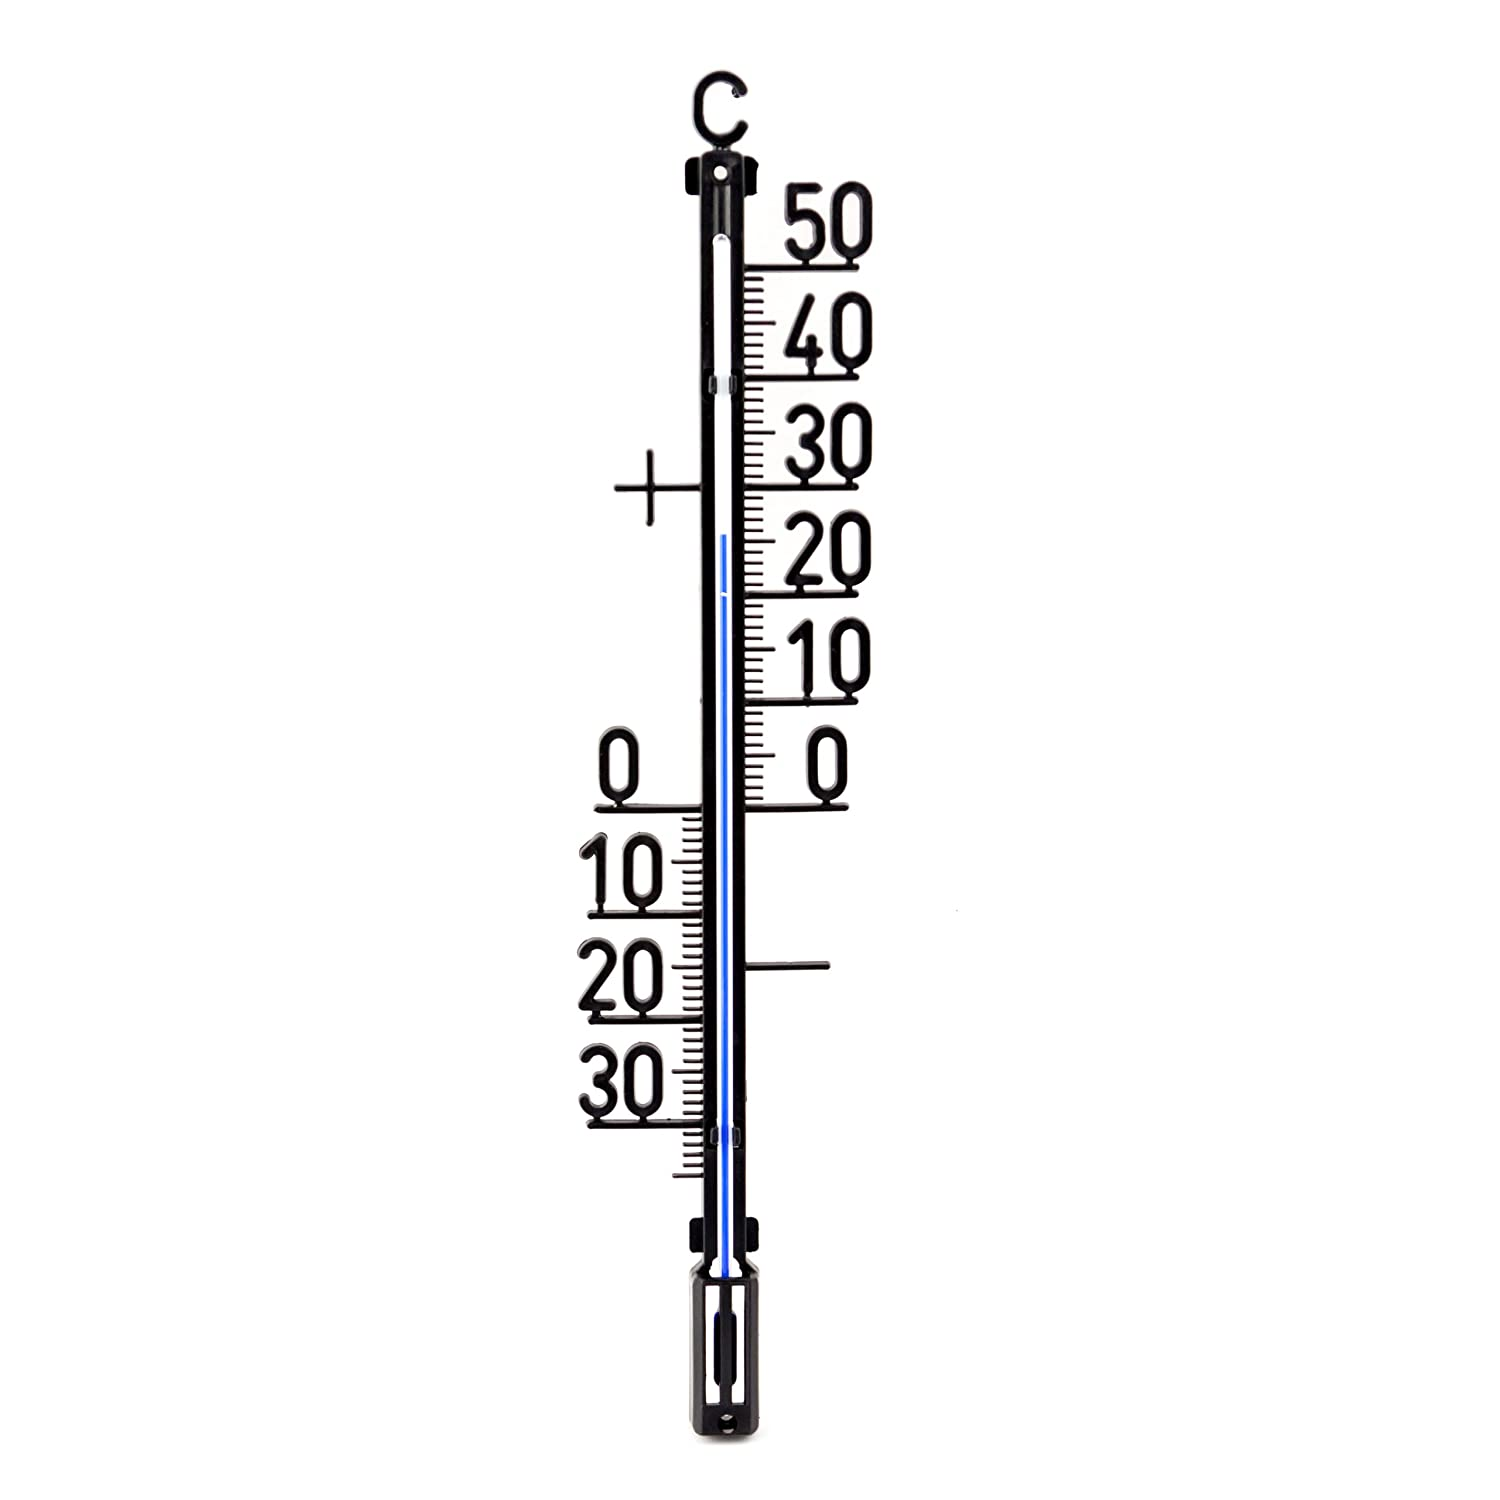 35 cm Outdoor/Garden – Analog Plastic Thermometer Outdoor Temperature Range -30 to + 50 °C Lantelme